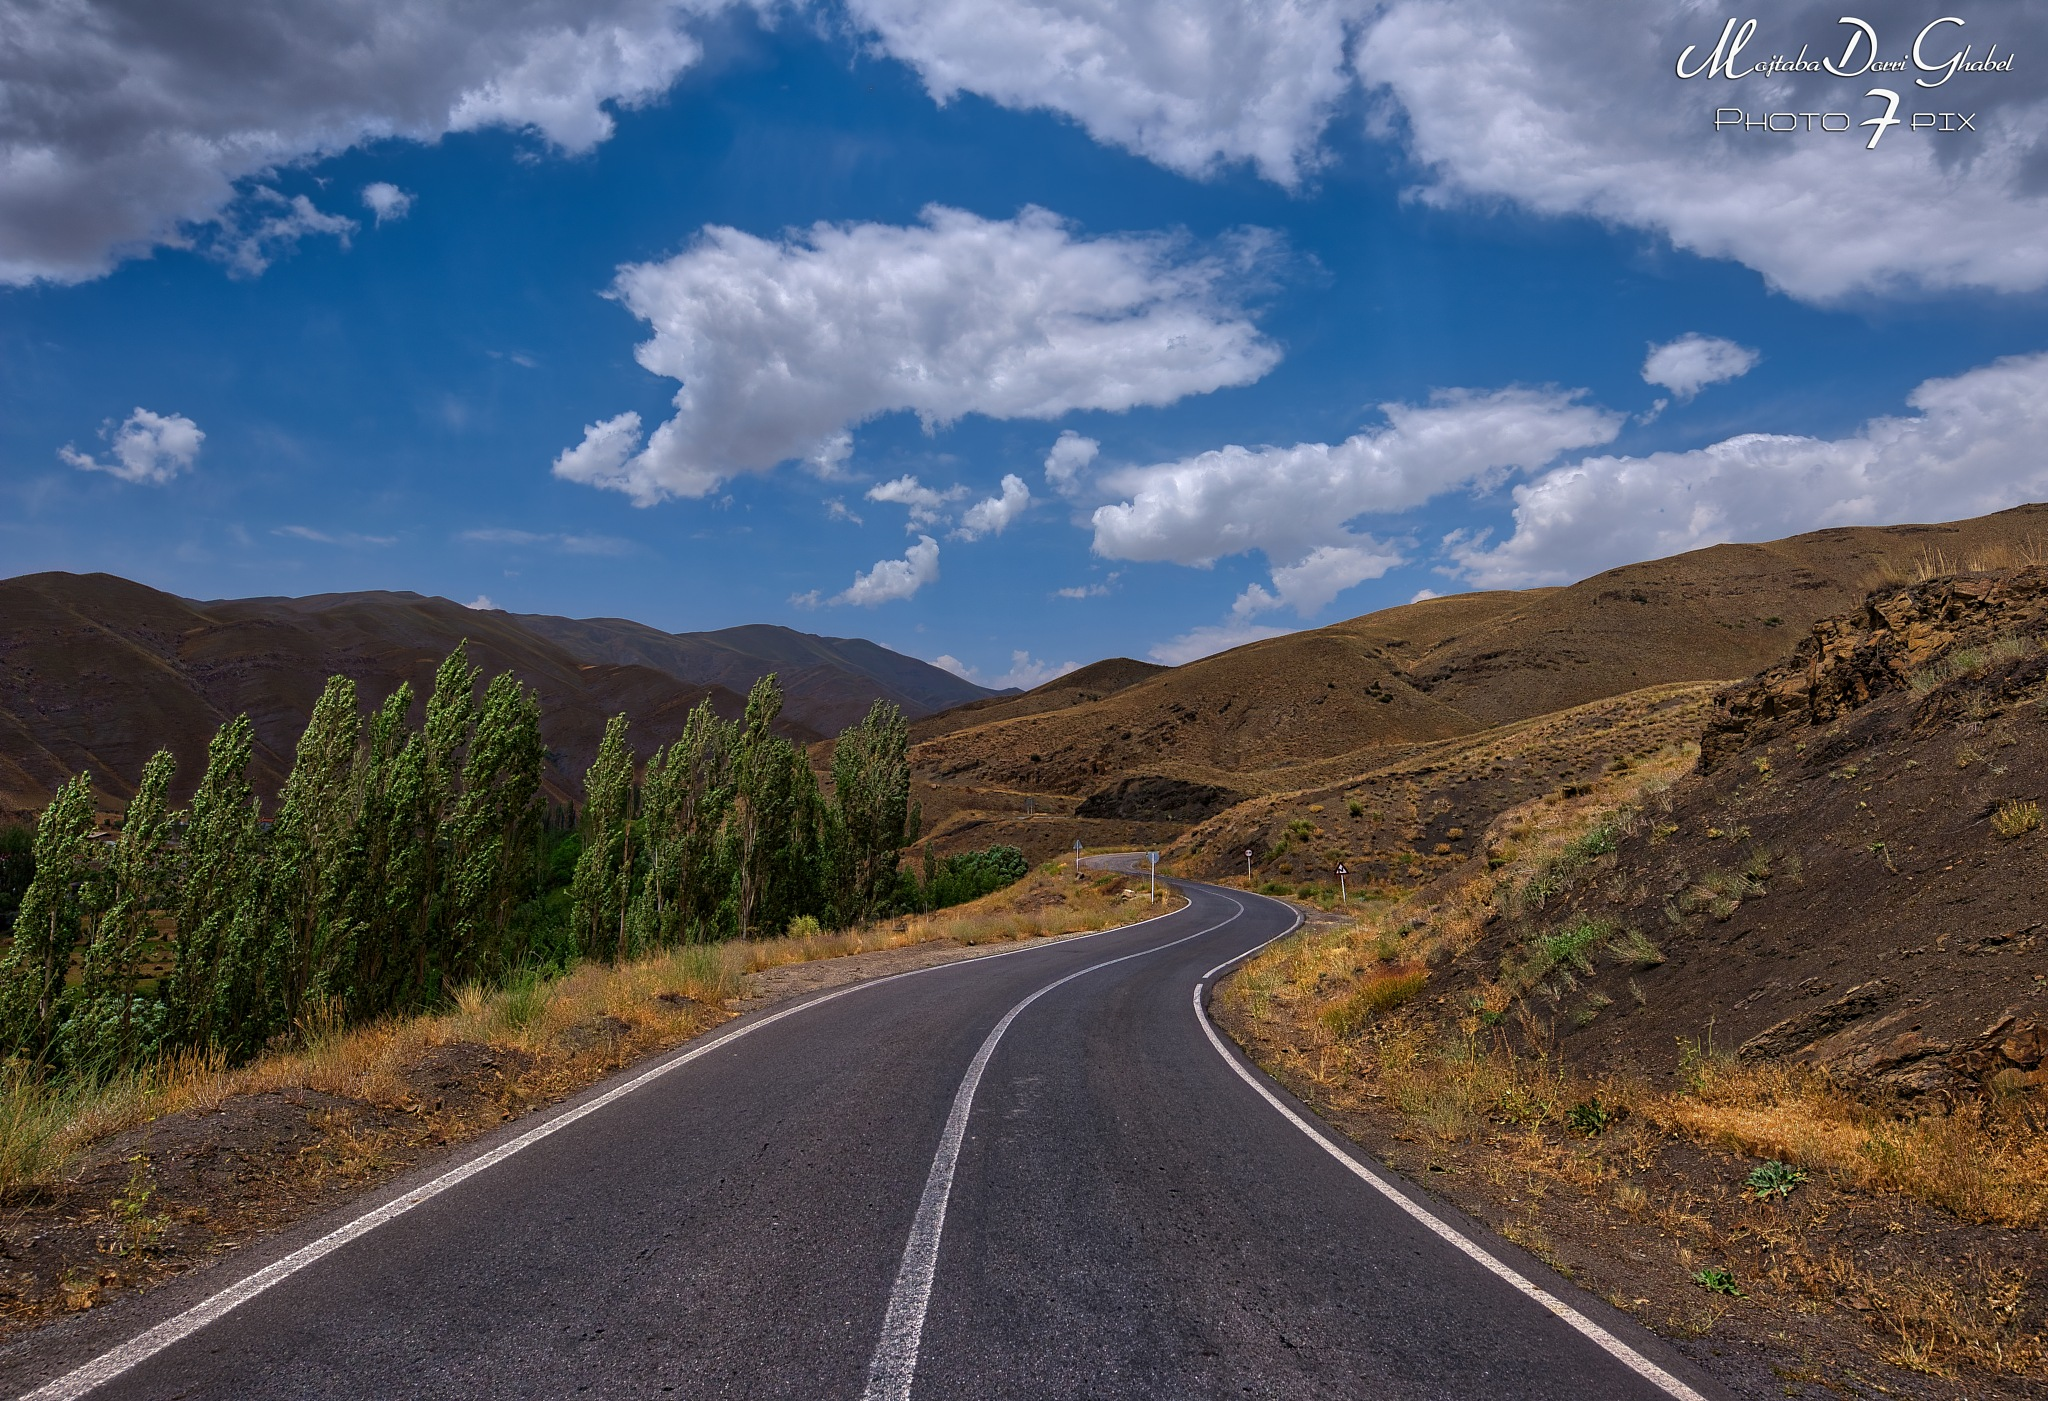 road to eternity  by mojtabadorri